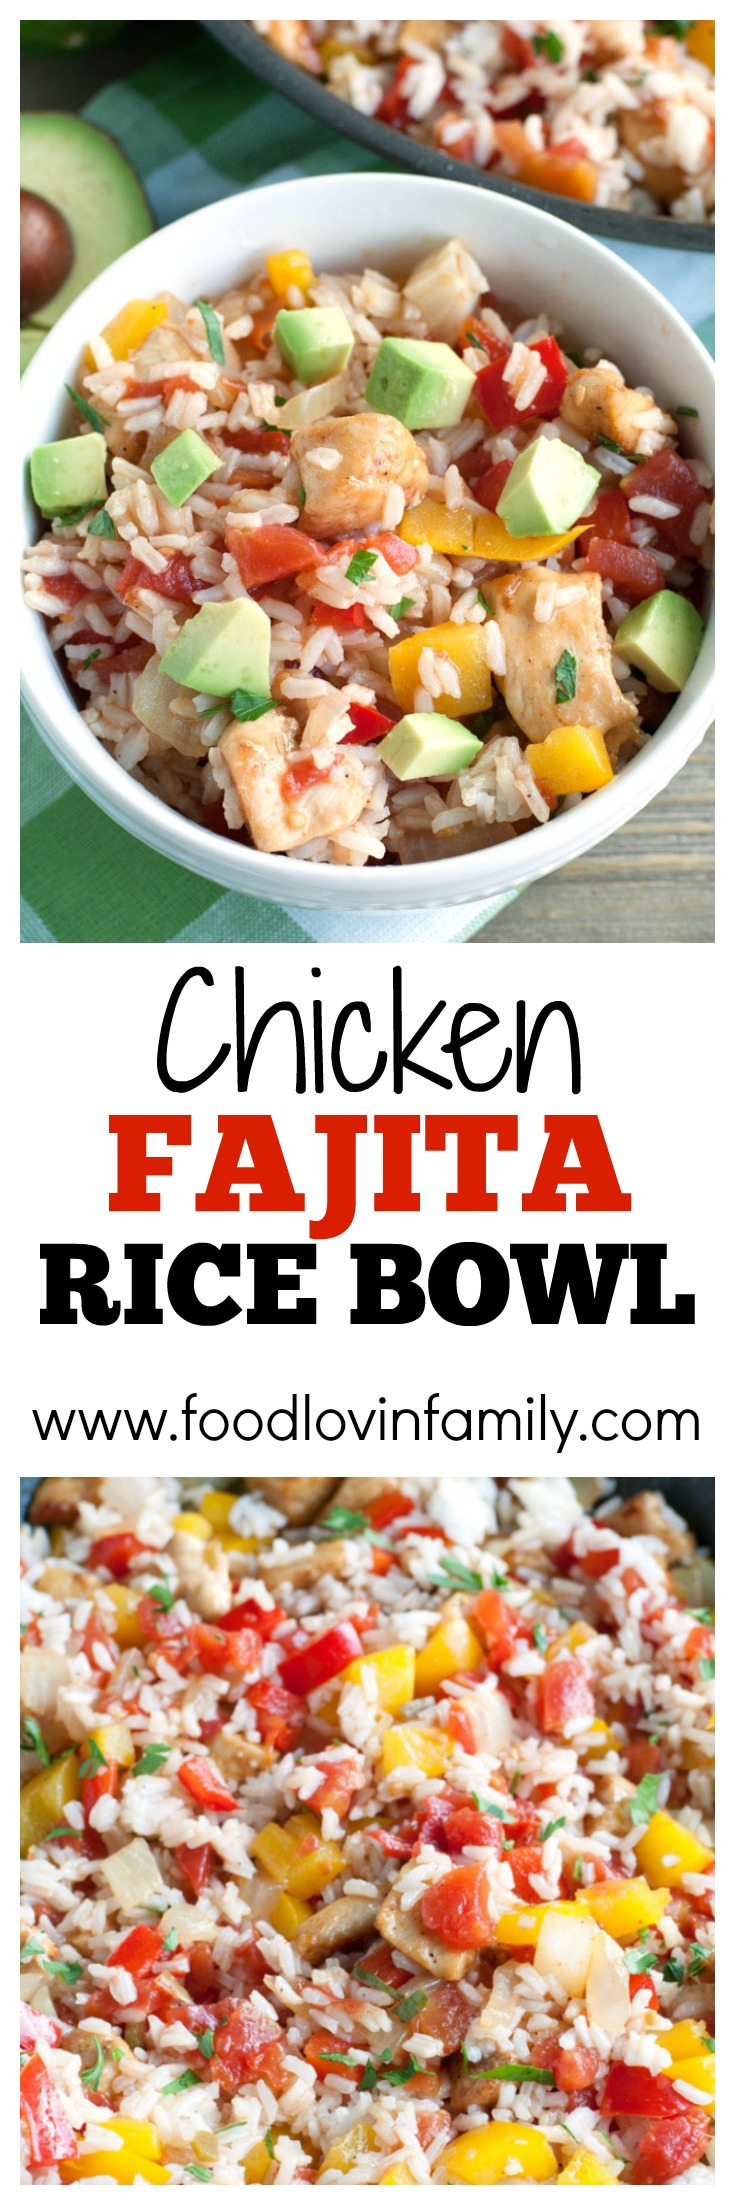 Chicken Fajita Rice Bowl - fajita seasoned chicken mixed with peppers, onions, RO*TEL and cilantro lime rice. A bold and flavorful meal the family will love. PIN